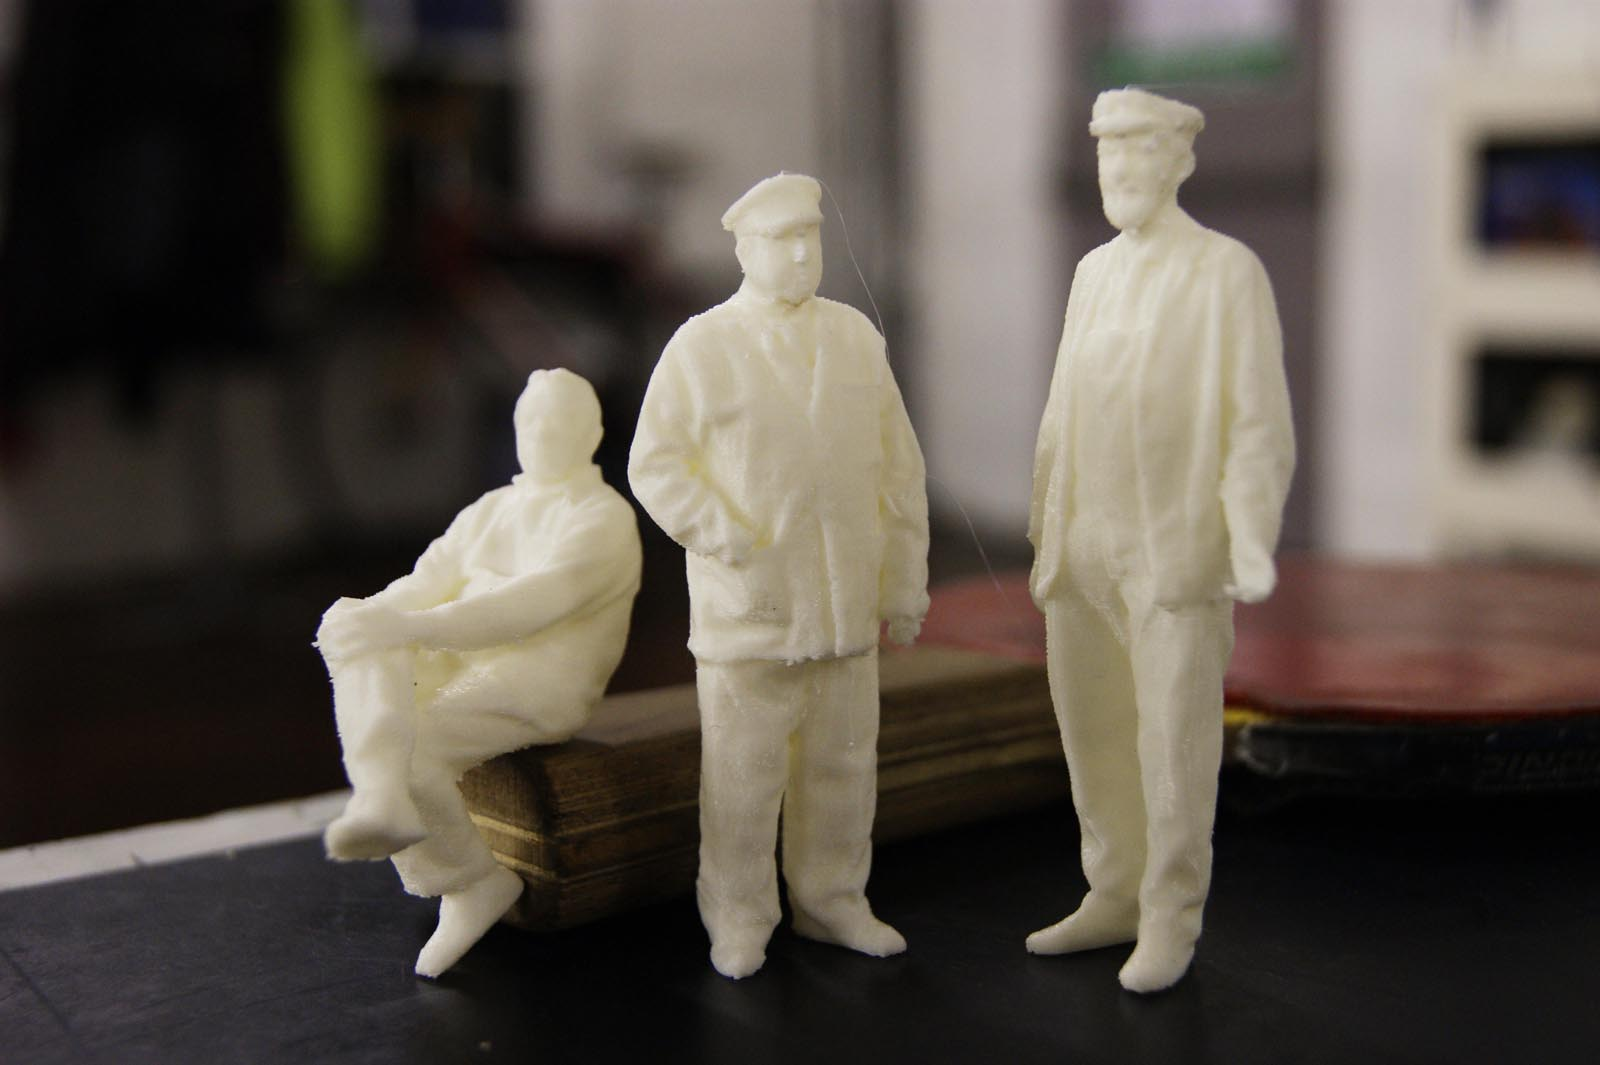 photograph regarding 3d Printable Figures called 3D Released miniatures towards 3D scans